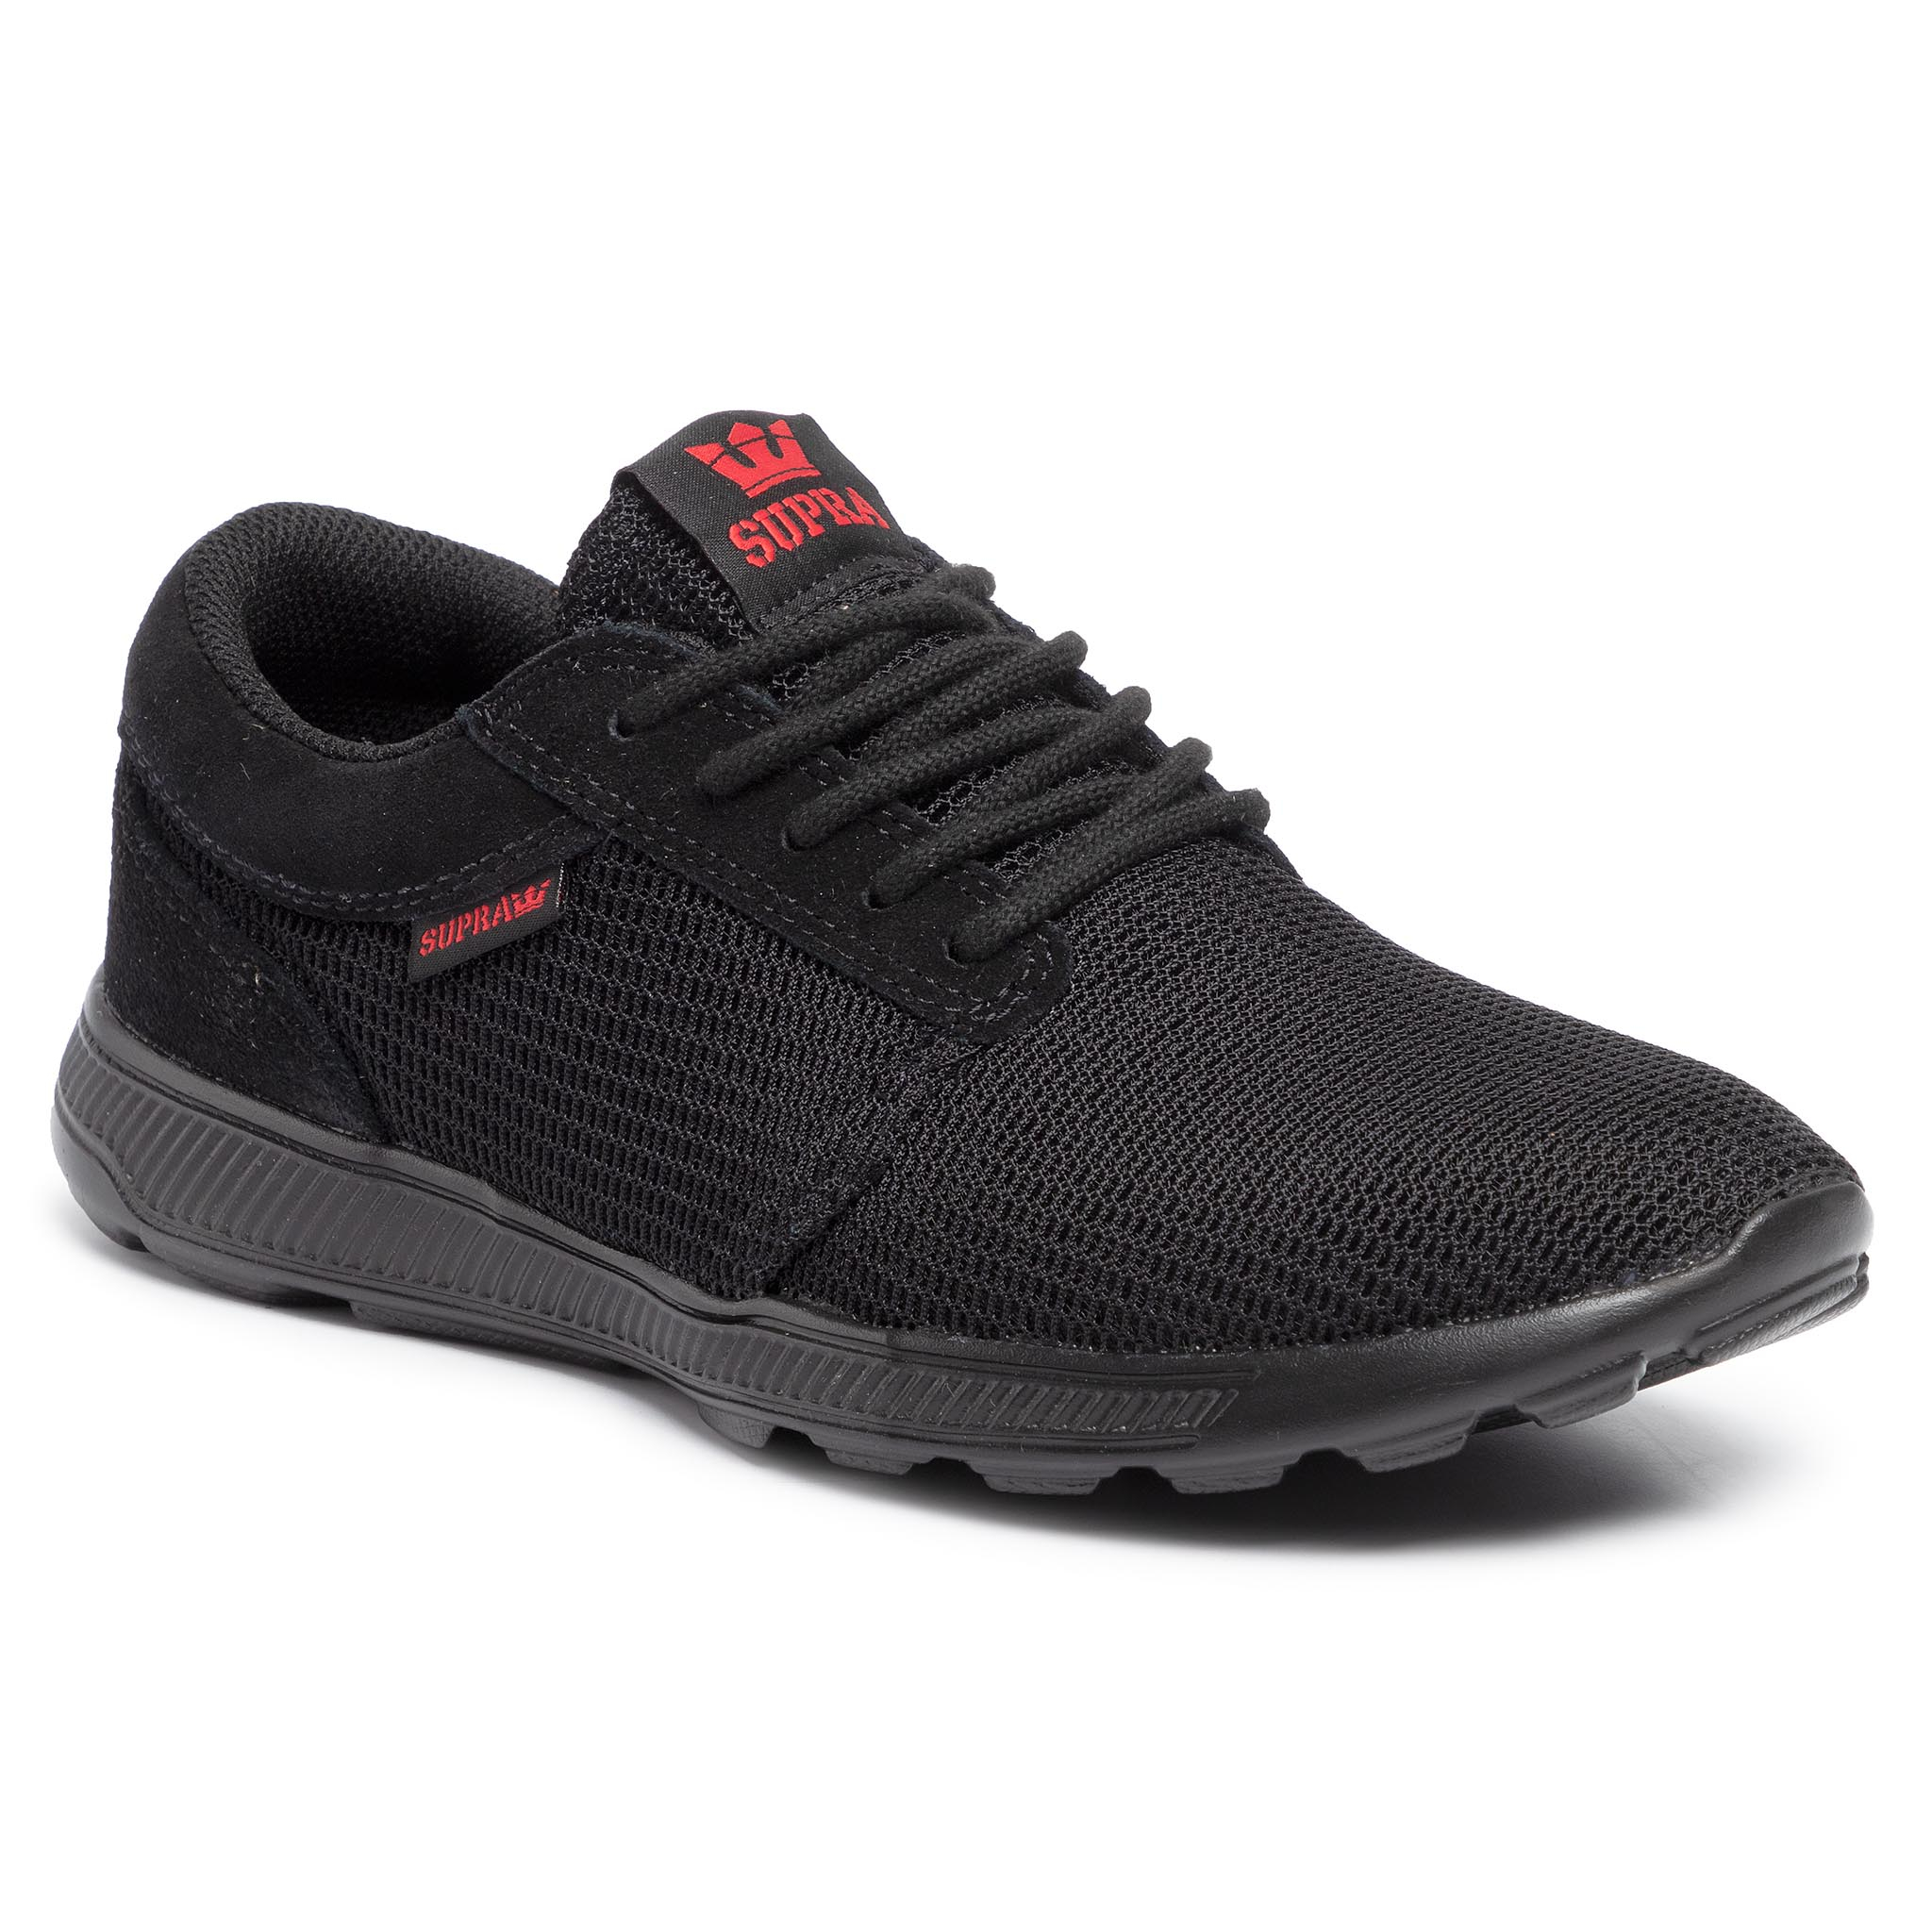 Sneakers SUPRA - Hammer Run 08128-053-M Black/Risk Red/Black